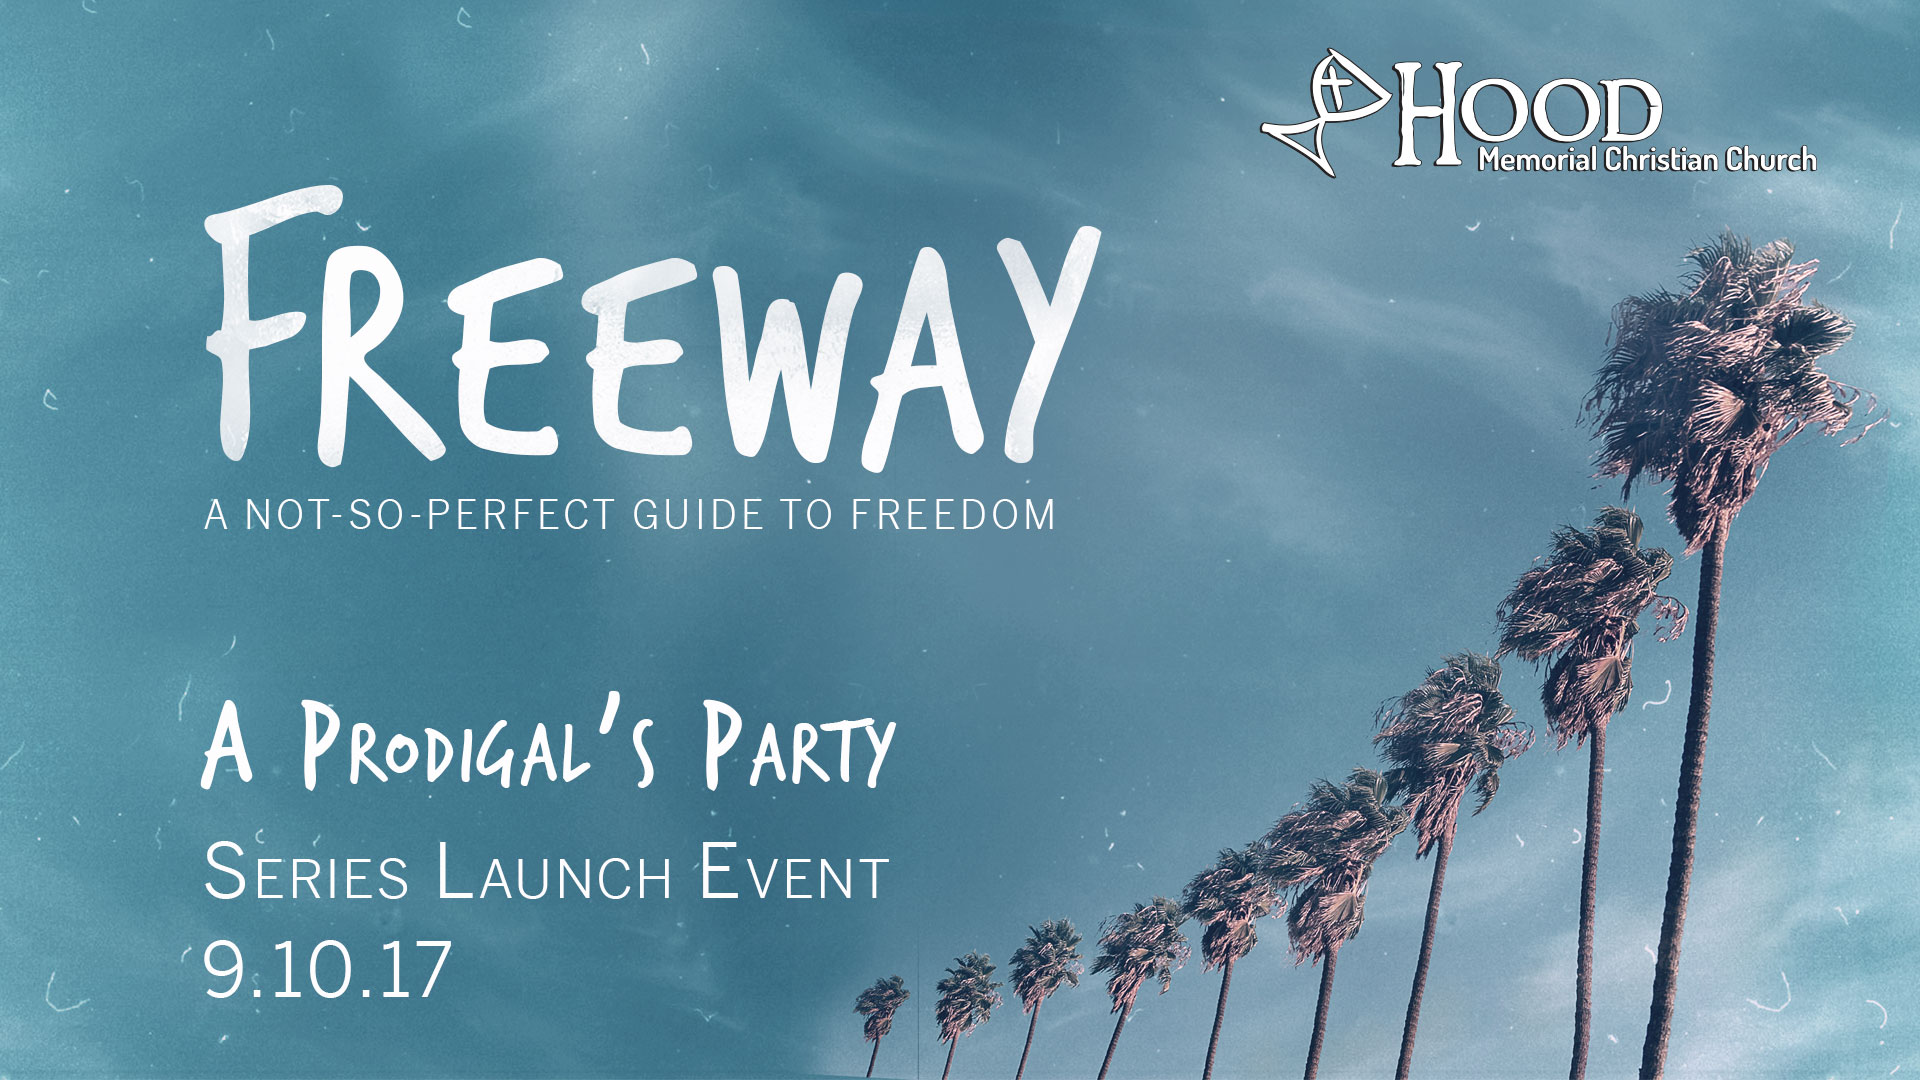 Invitation - A Prodigal's Party